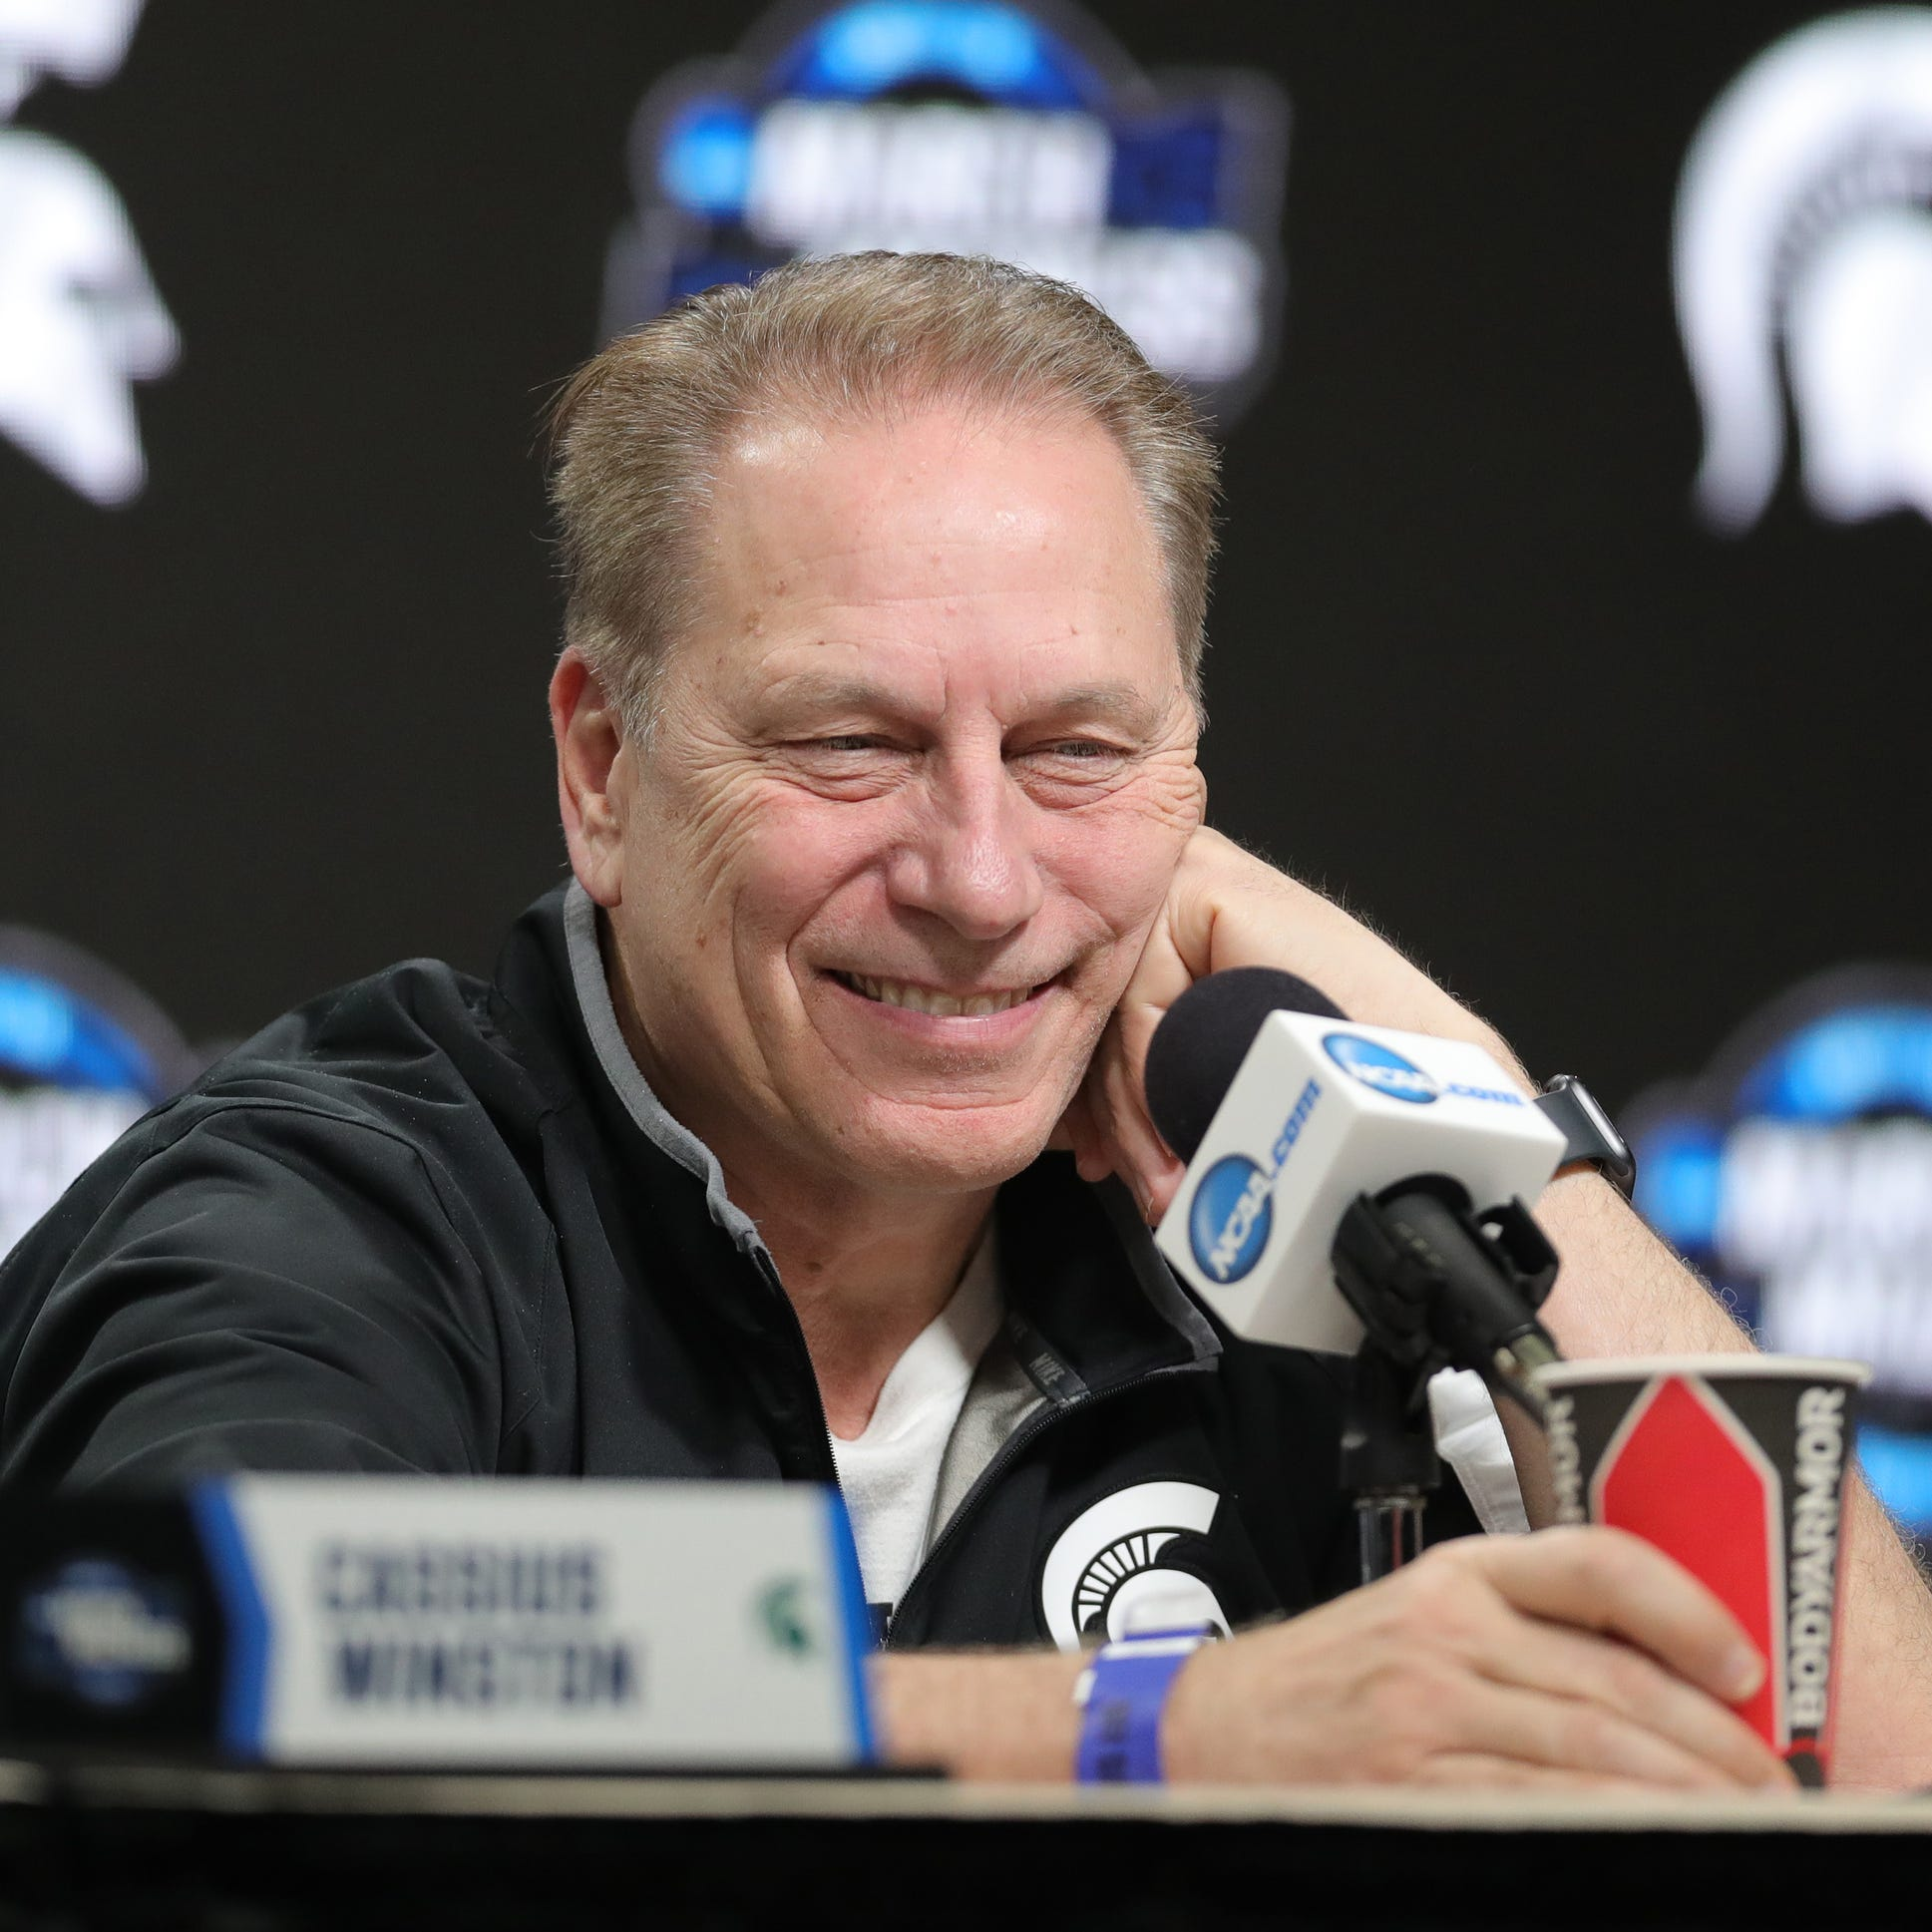 Here's what Michigan State's Tom Izzo said about showdown with Duke